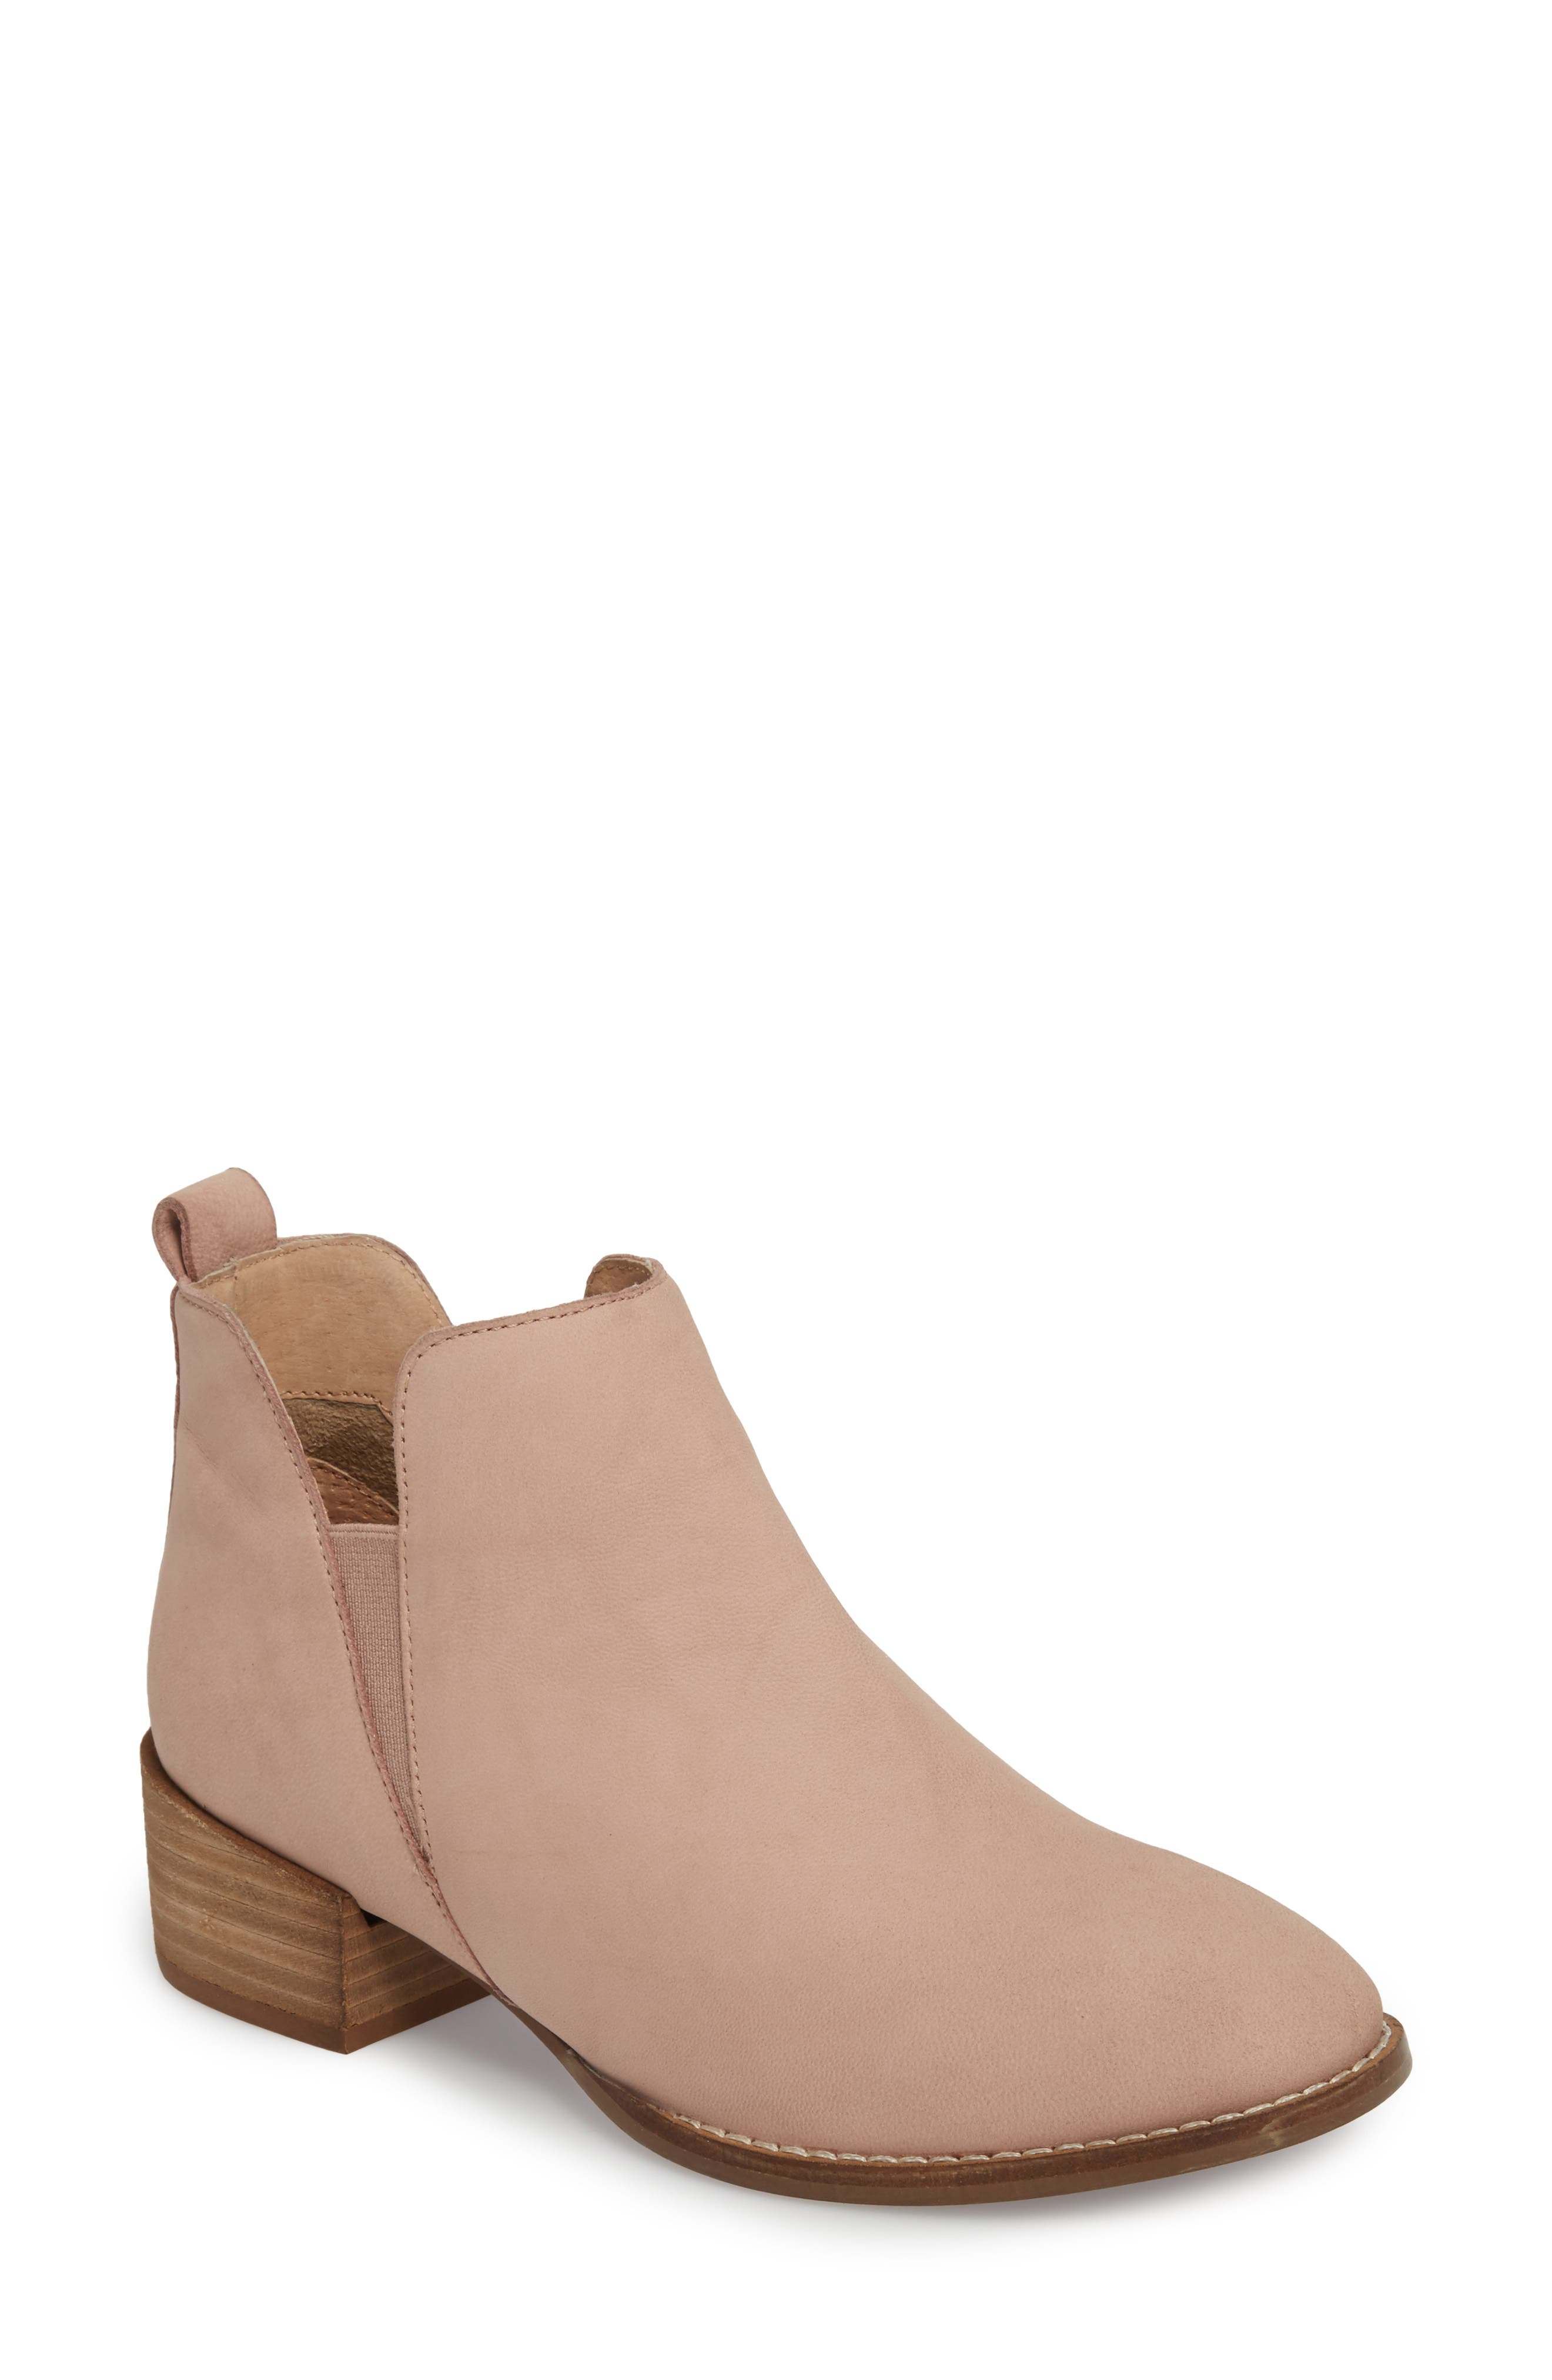 Alternate Image 1 Selected - Seychelles Offstage Boot (Women)